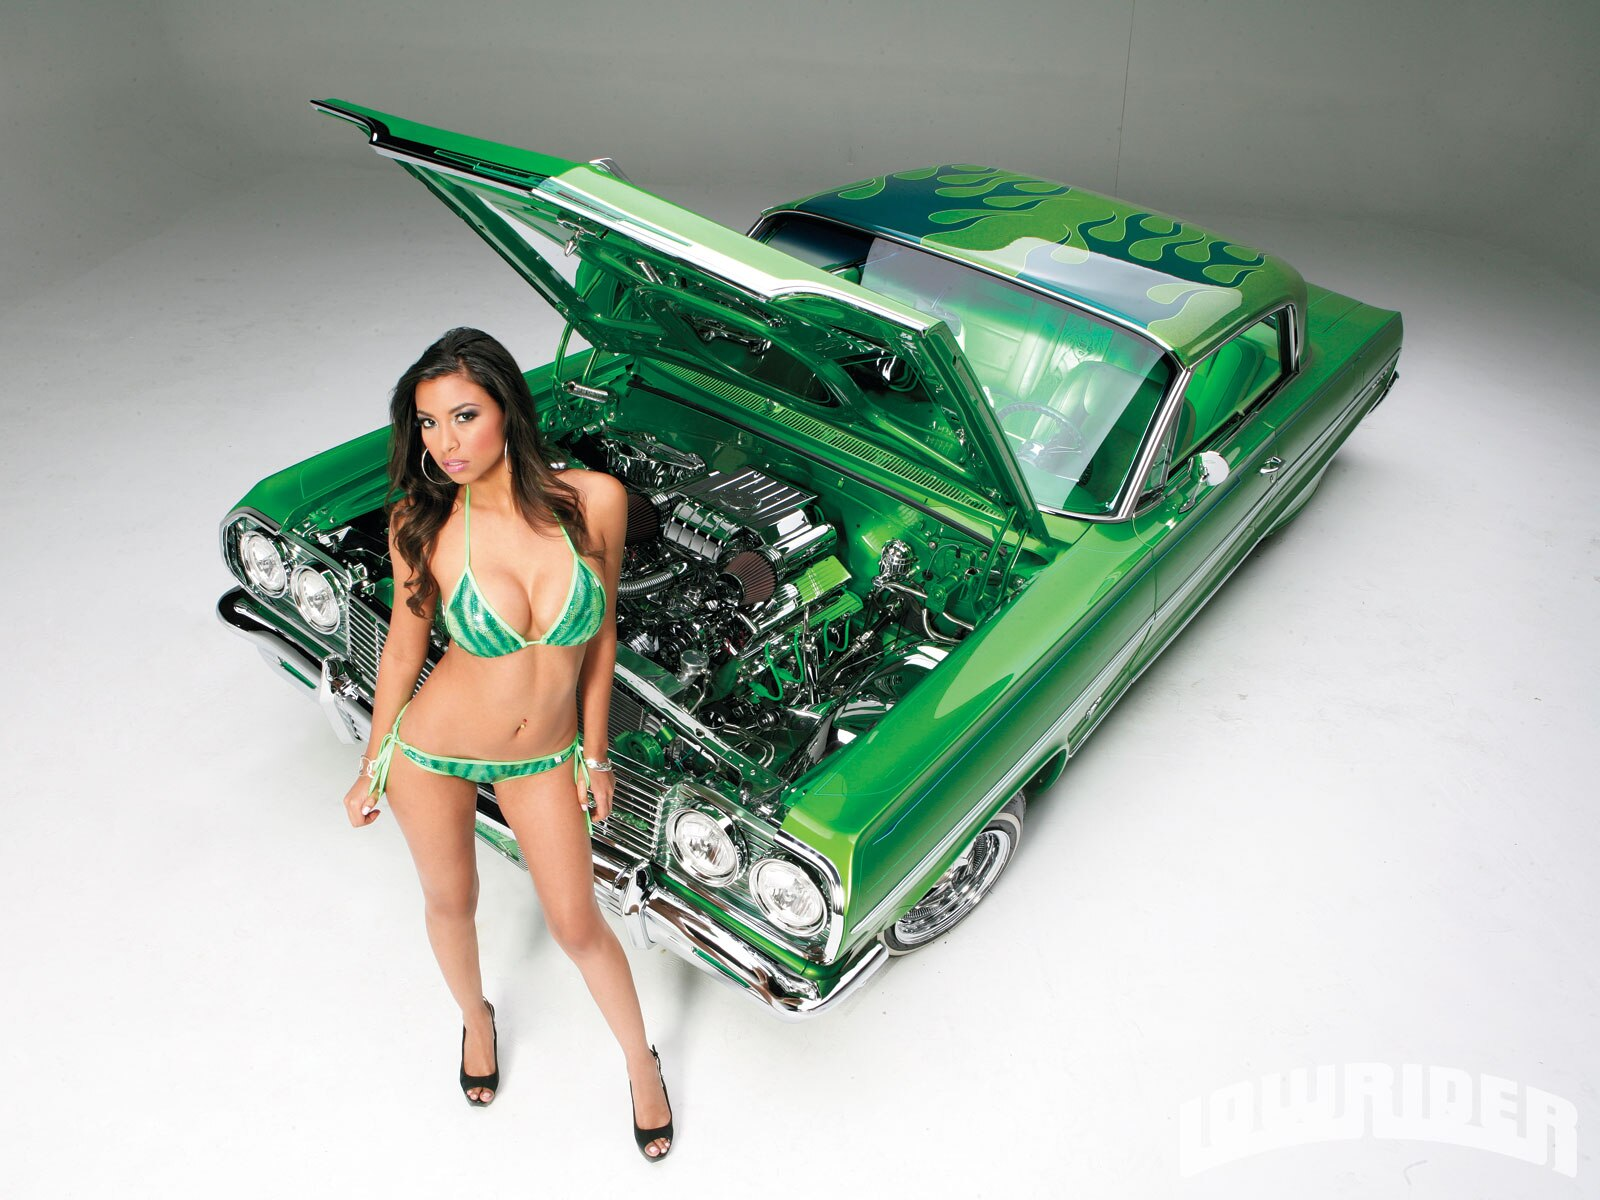 1105-lrms-01-o-alexis-lopez-lowrider-girls-model-2